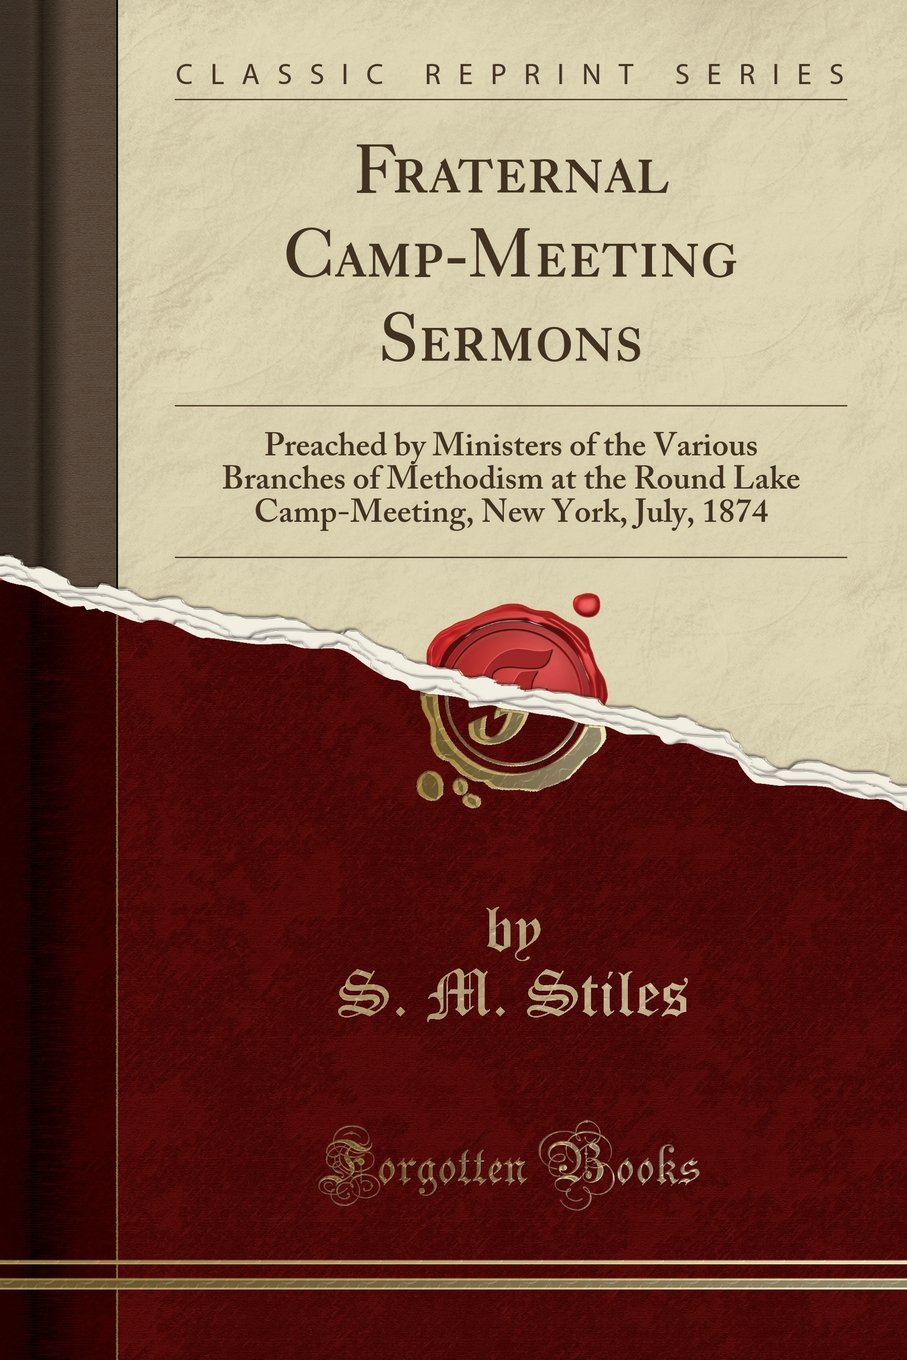 Download Fraternal Camp-Meeting Sermons: Preached by Ministers of the Various Branches of Methodism at the Round Lake Camp-Meeting, New York, July, 1874 (Classic Reprint) pdf